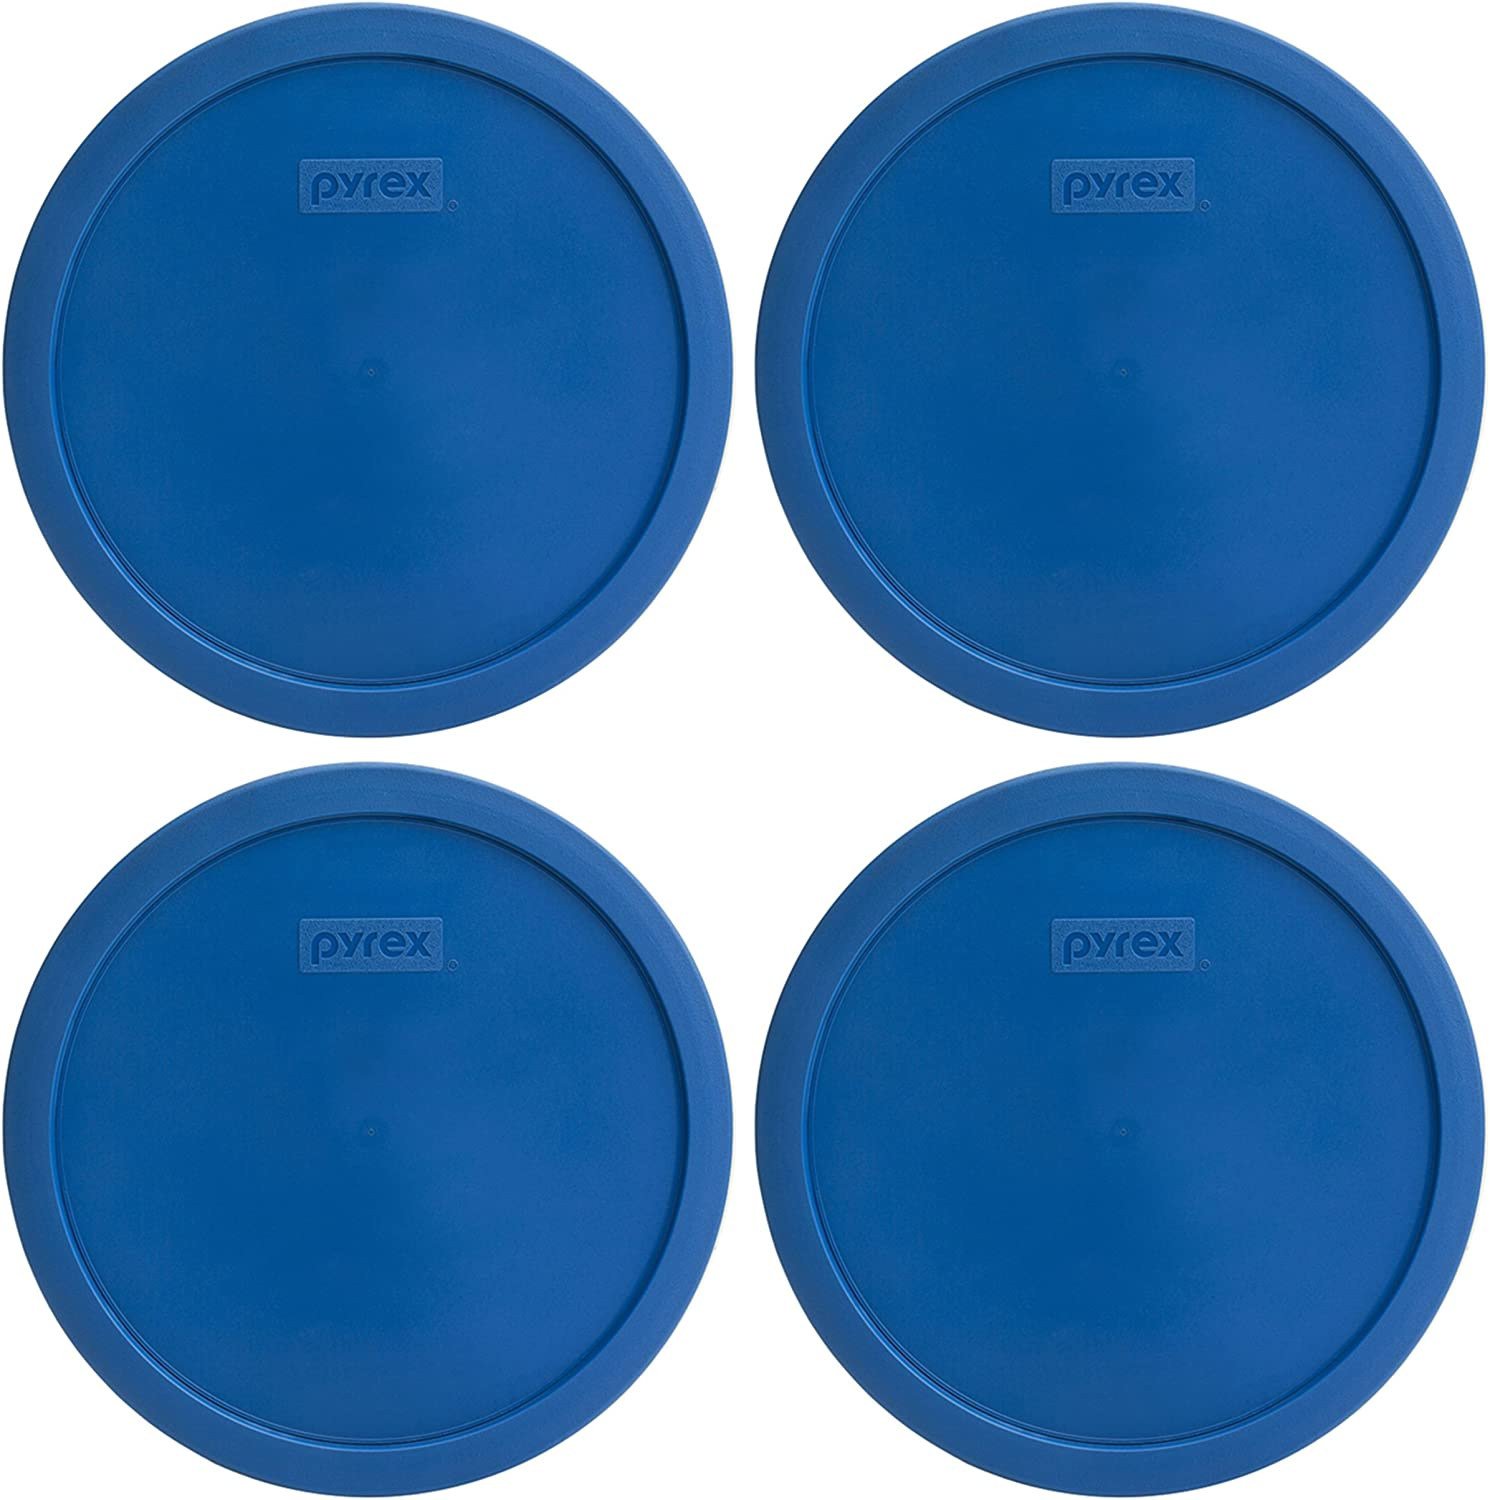 Pyrex 7401-PC 3-Cup Lake Blue Round Plastic Lids - 4 Pack: Home & Kitchen